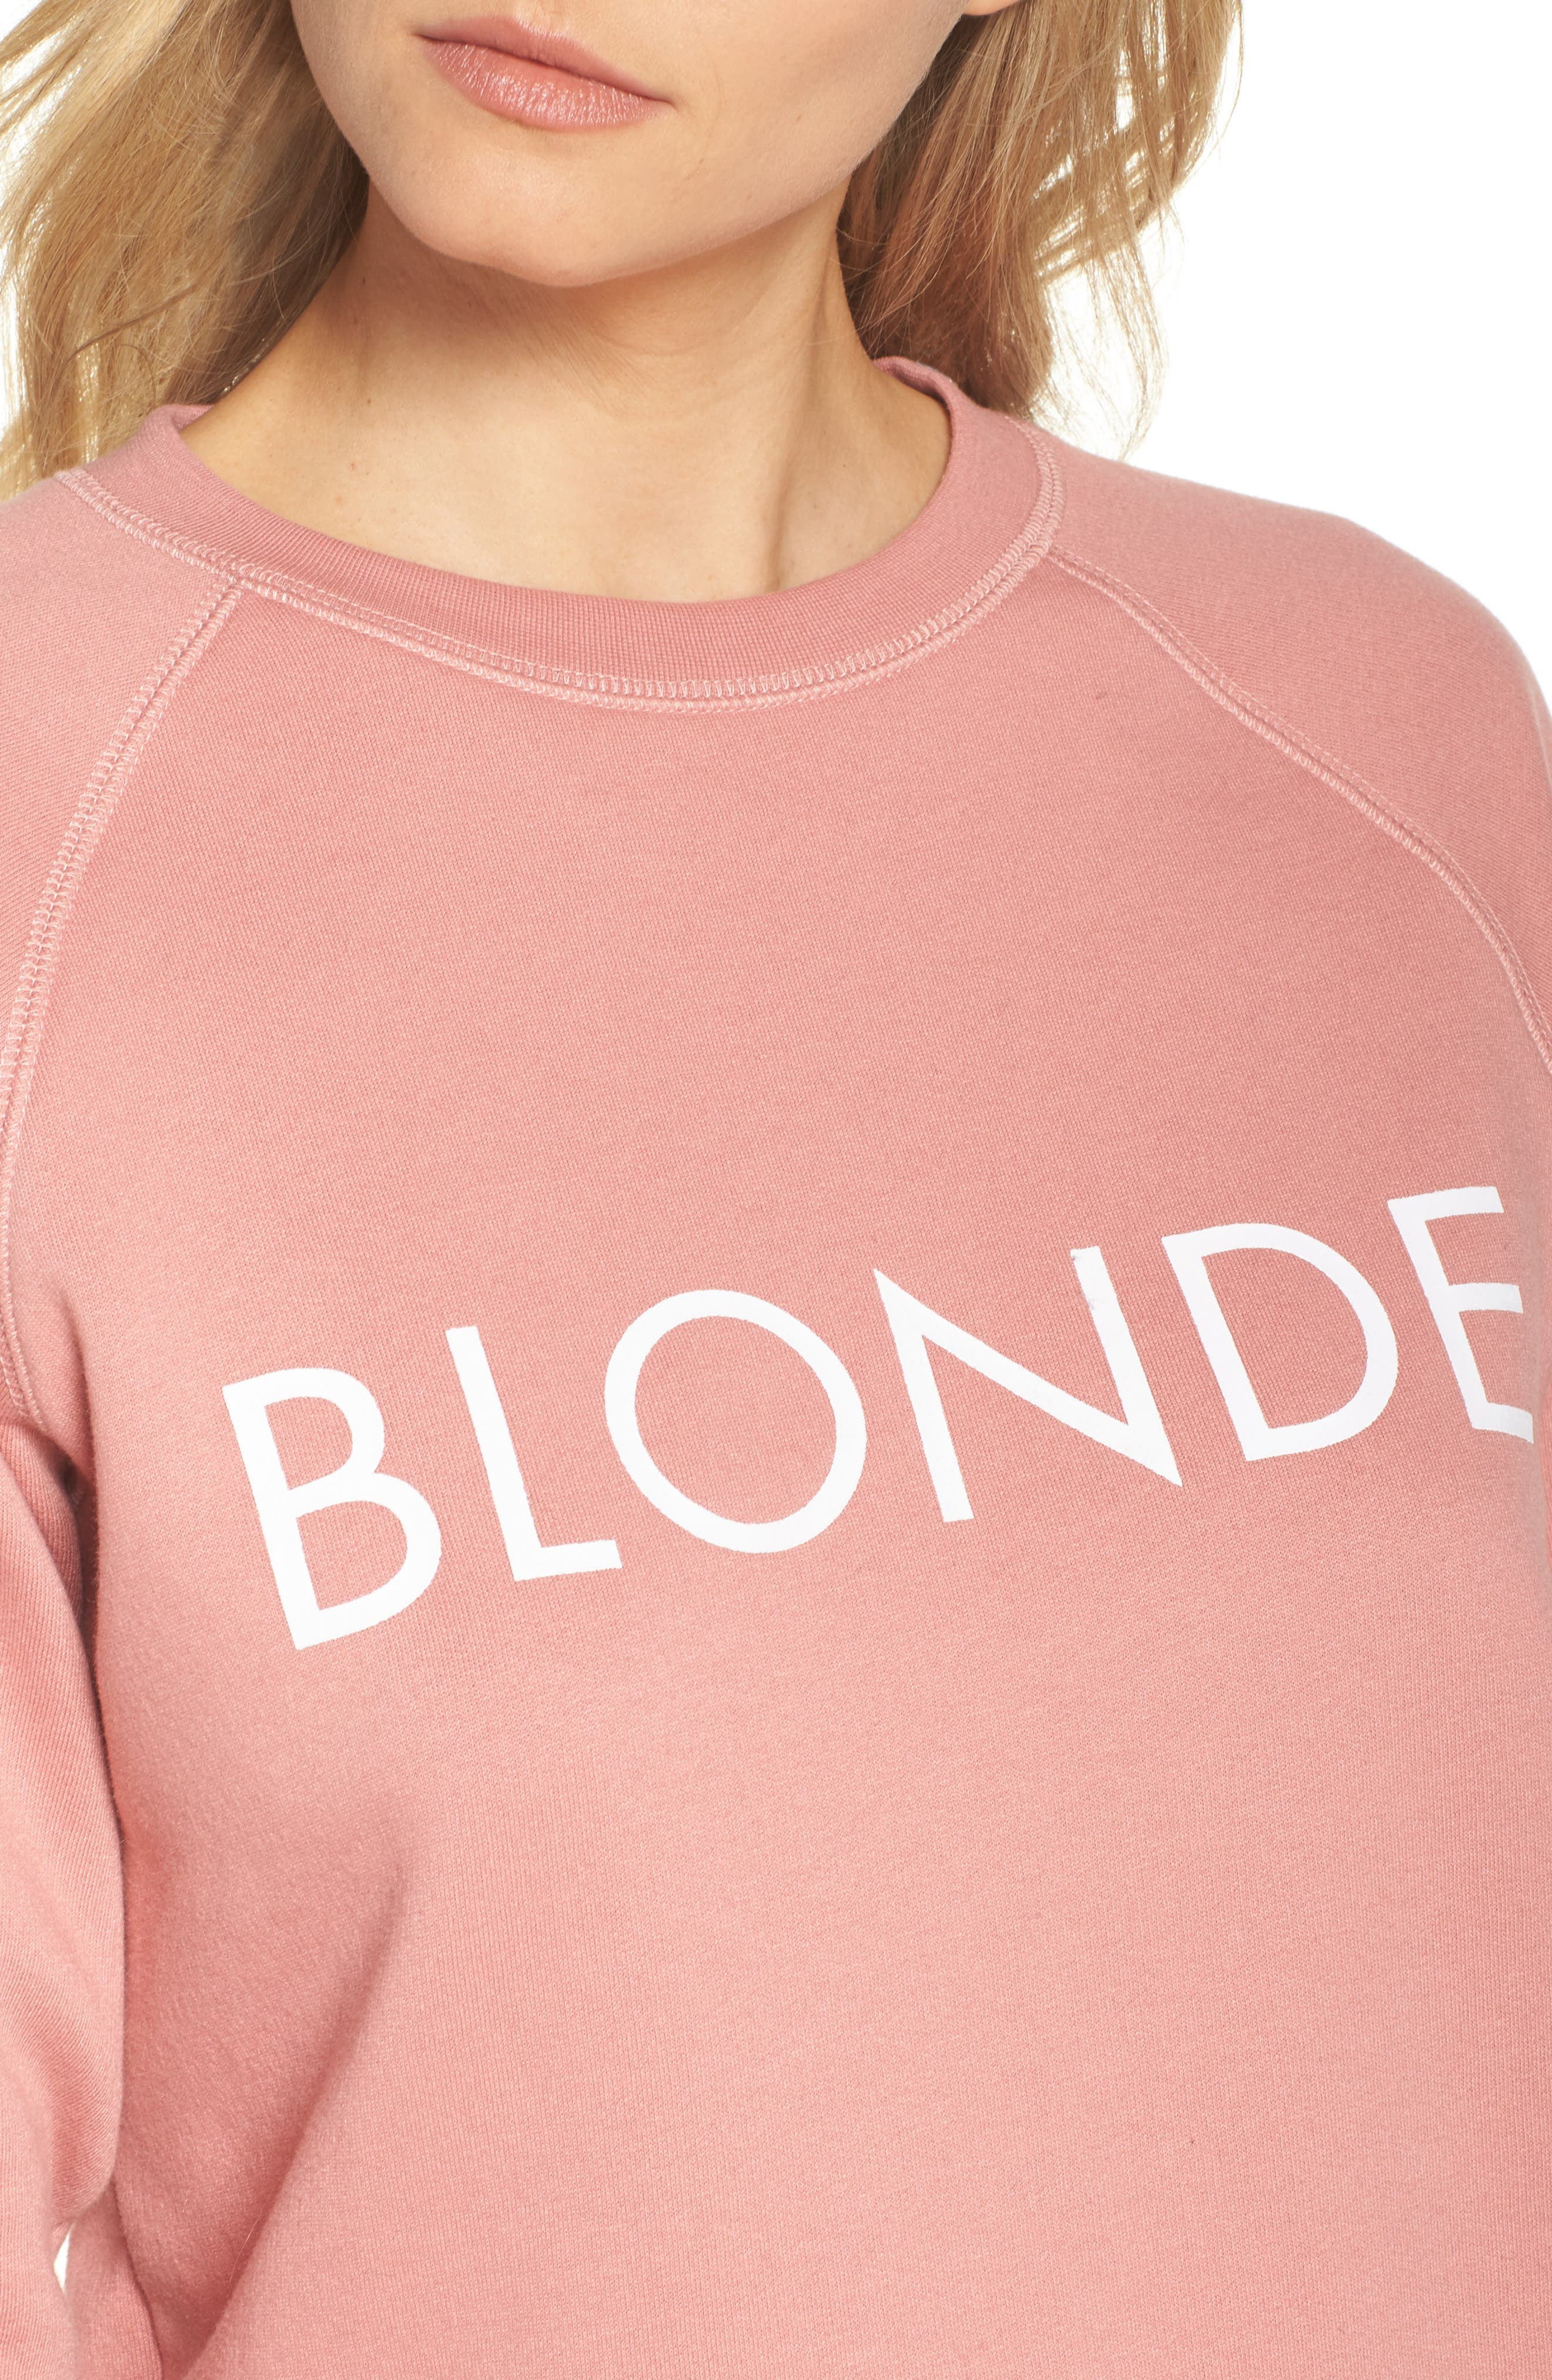 Blonde Crewneck Sweatshirt,                             Alternate thumbnail 5, color,                             Dusty Rose